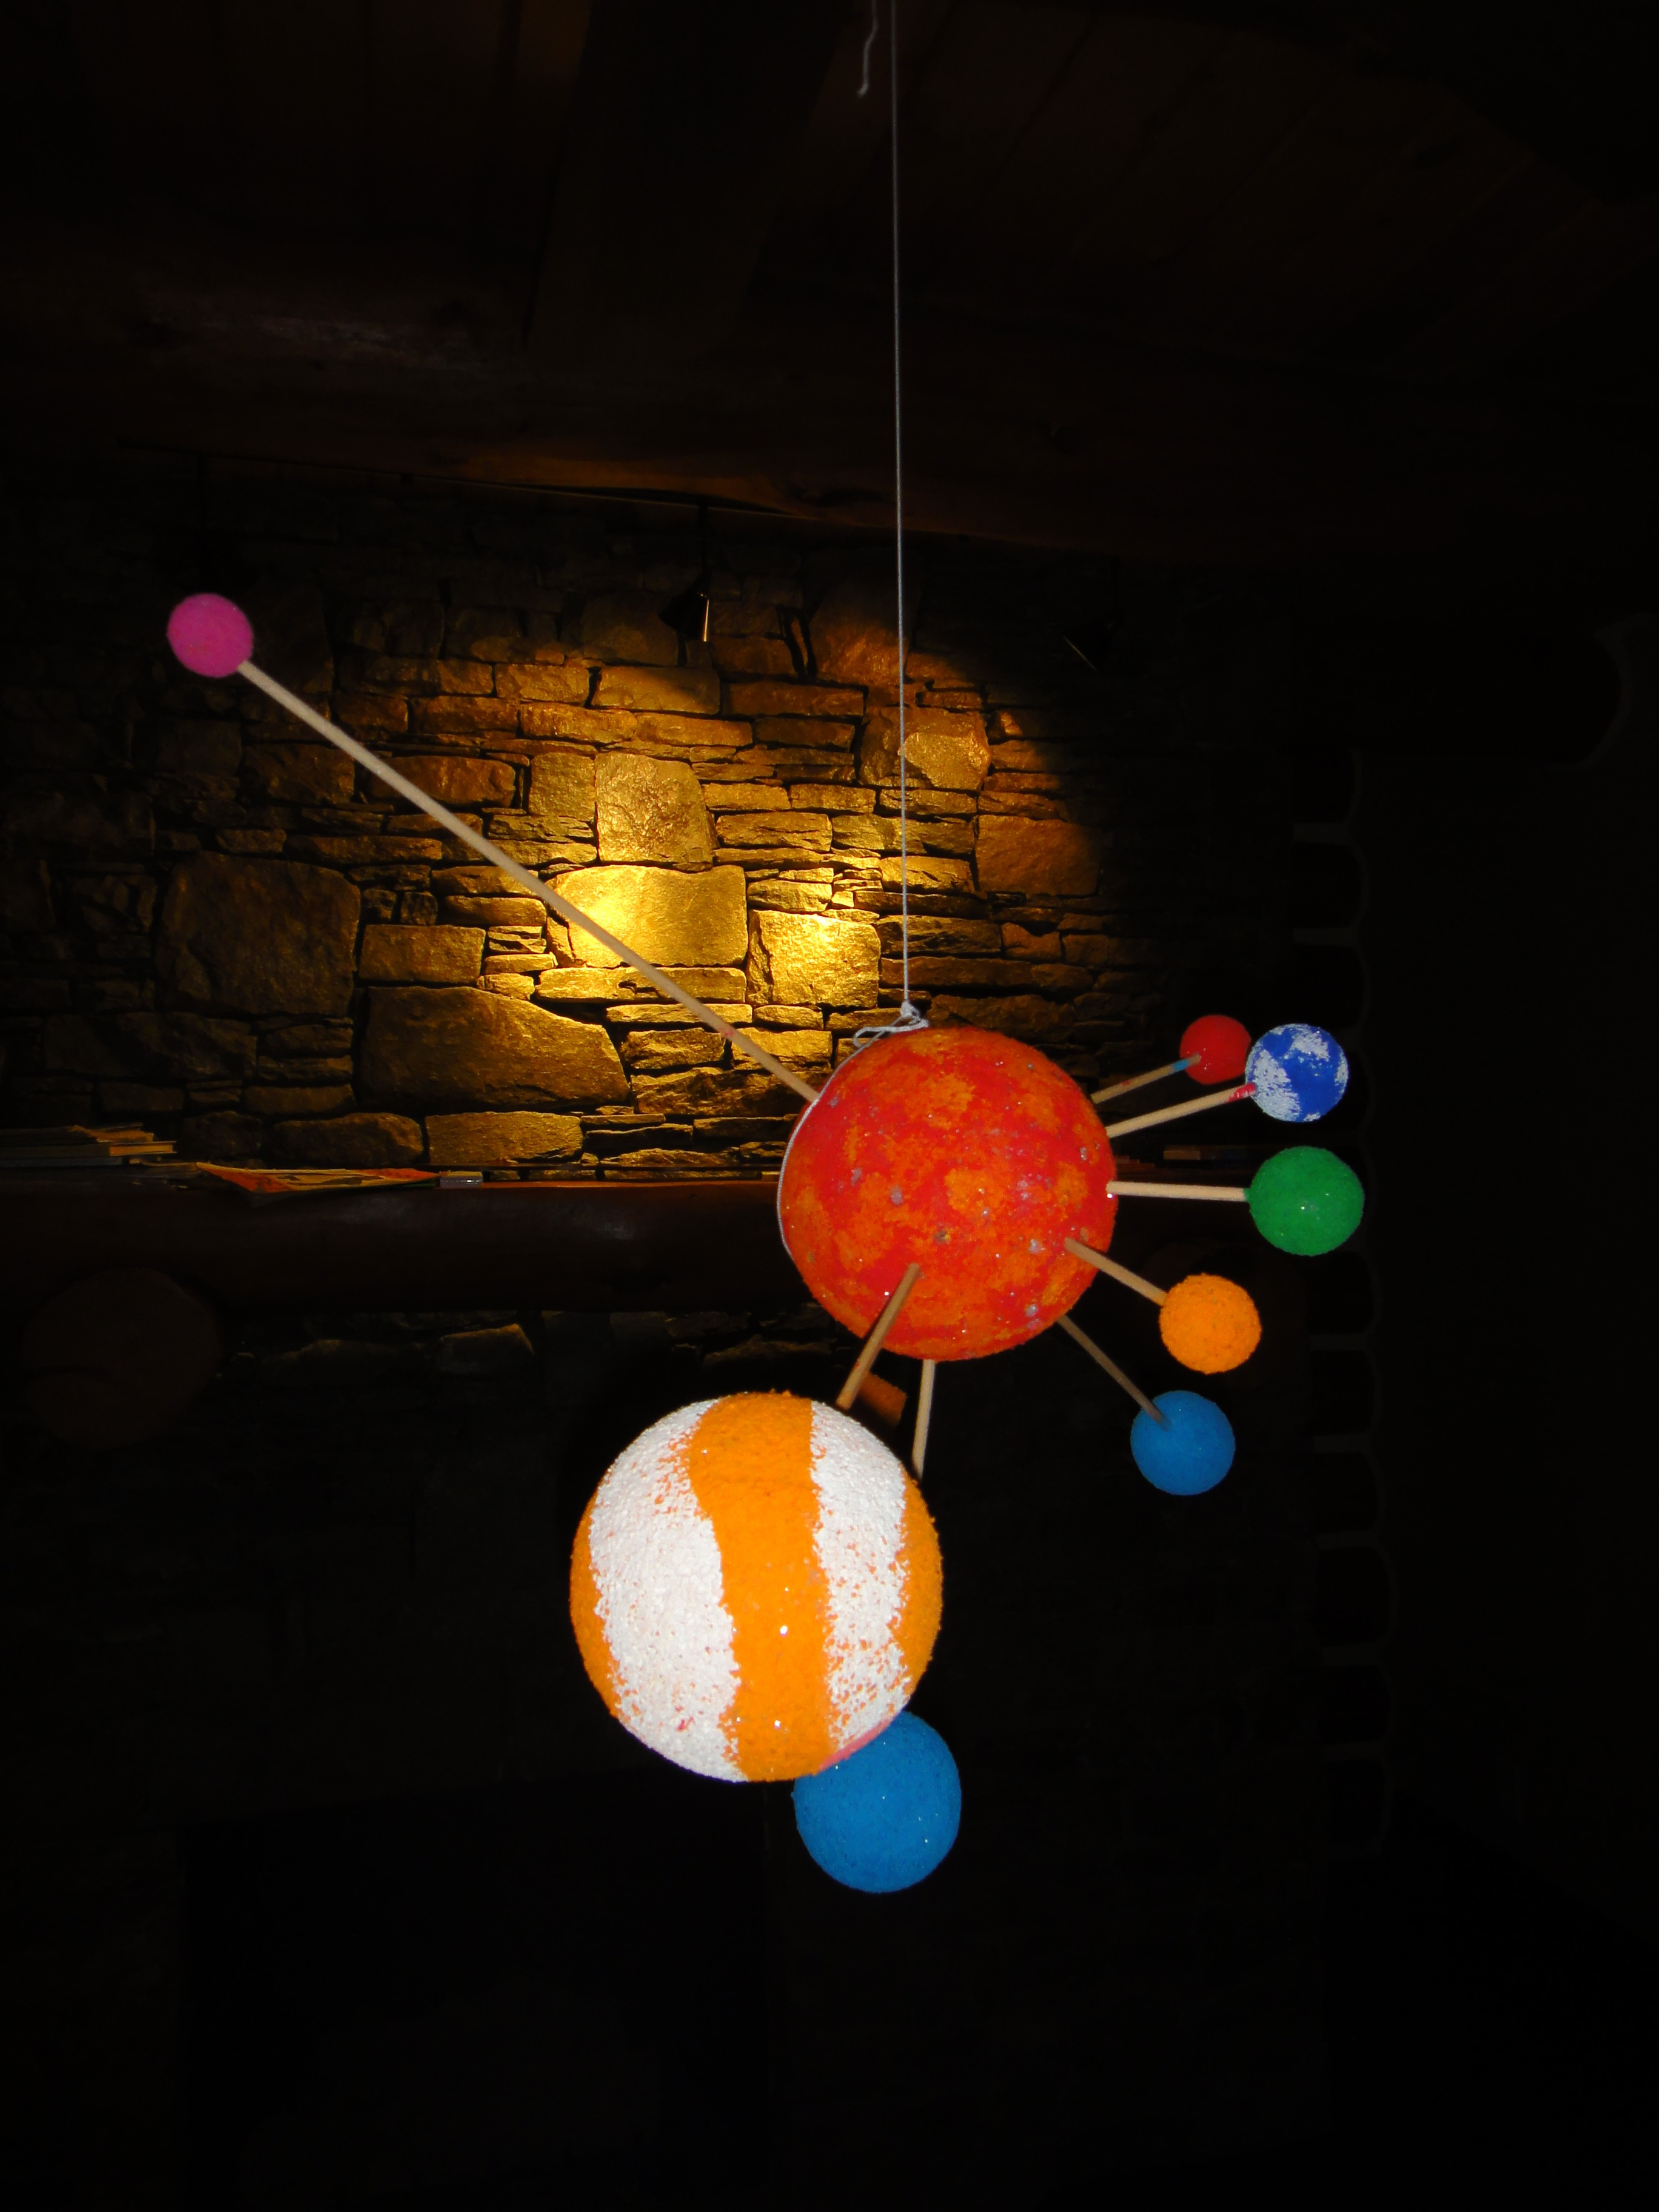 solar system learning - photo #44